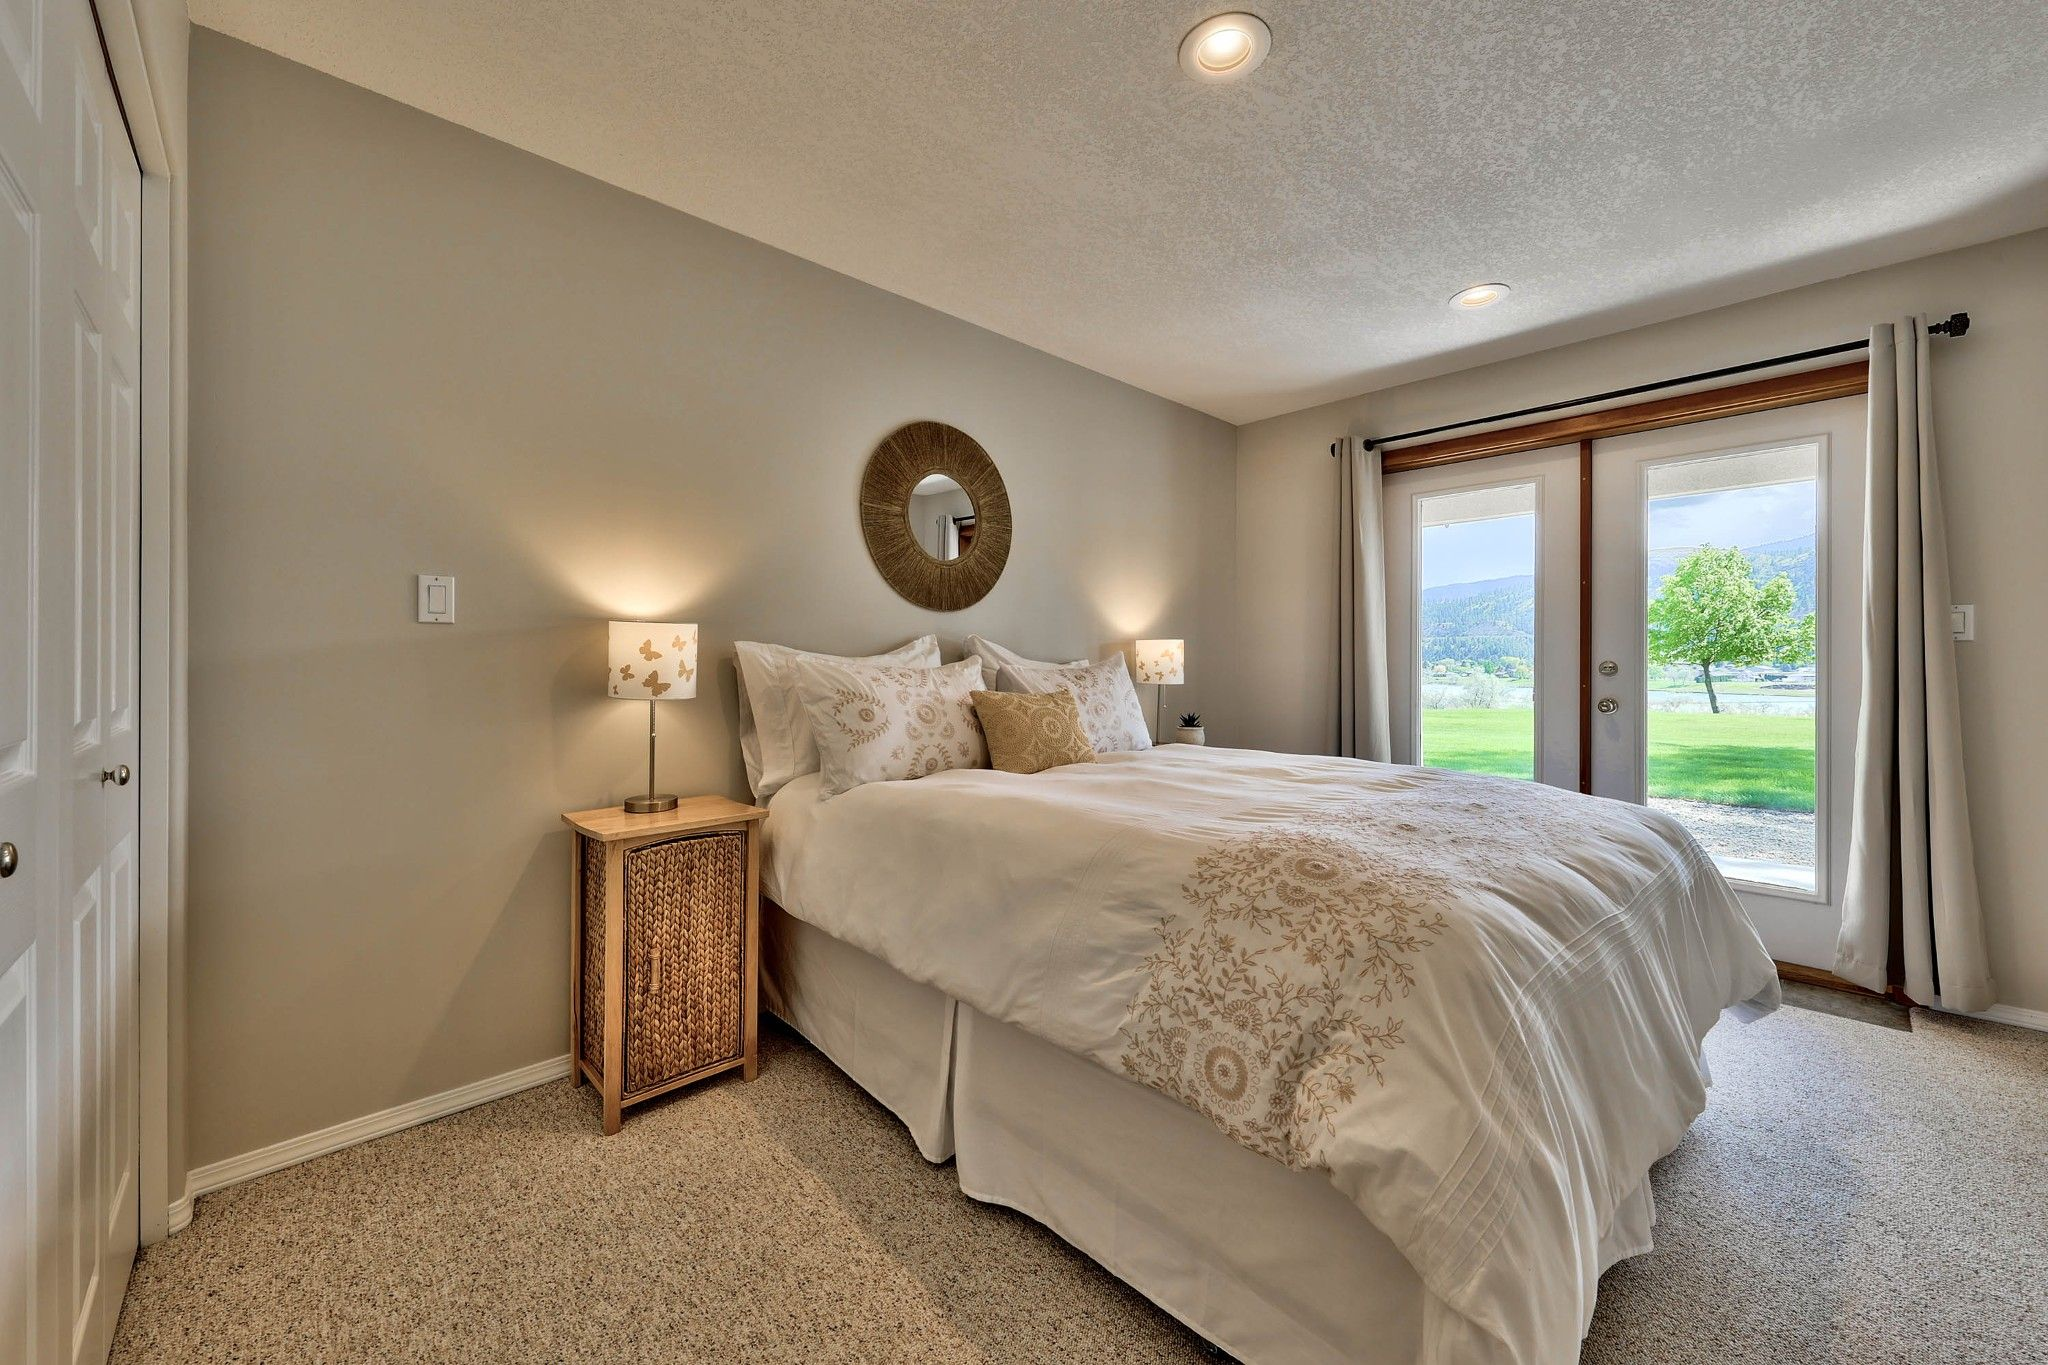 Photo 34: Photos: 3299 E Shuswap Road in Kamloops: South Thompson Valley House for sale : MLS®# 162162